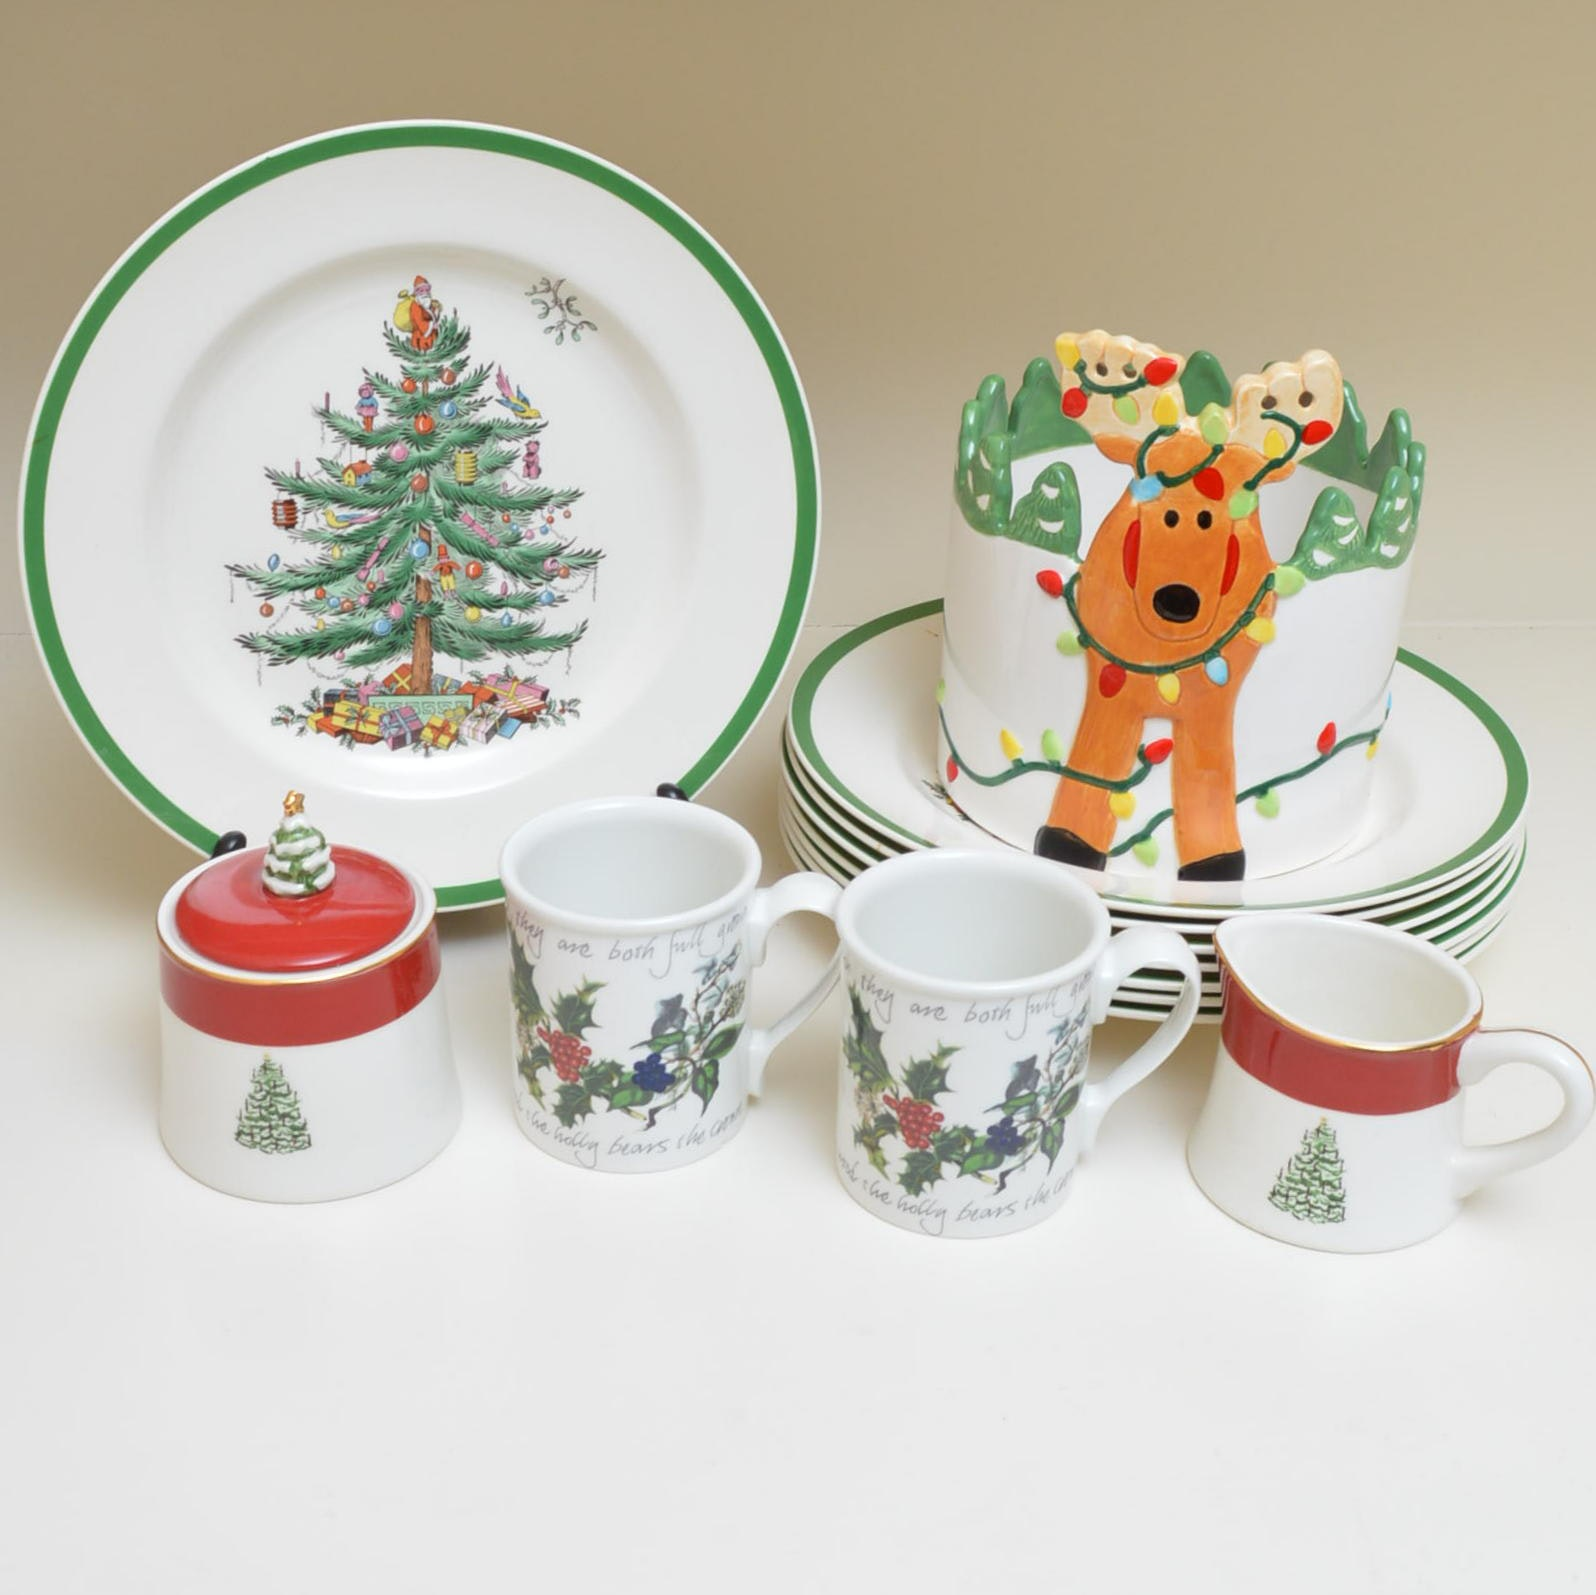 """Spode """"Christmas Tree"""" Plates and Other Holiday Serveware"""